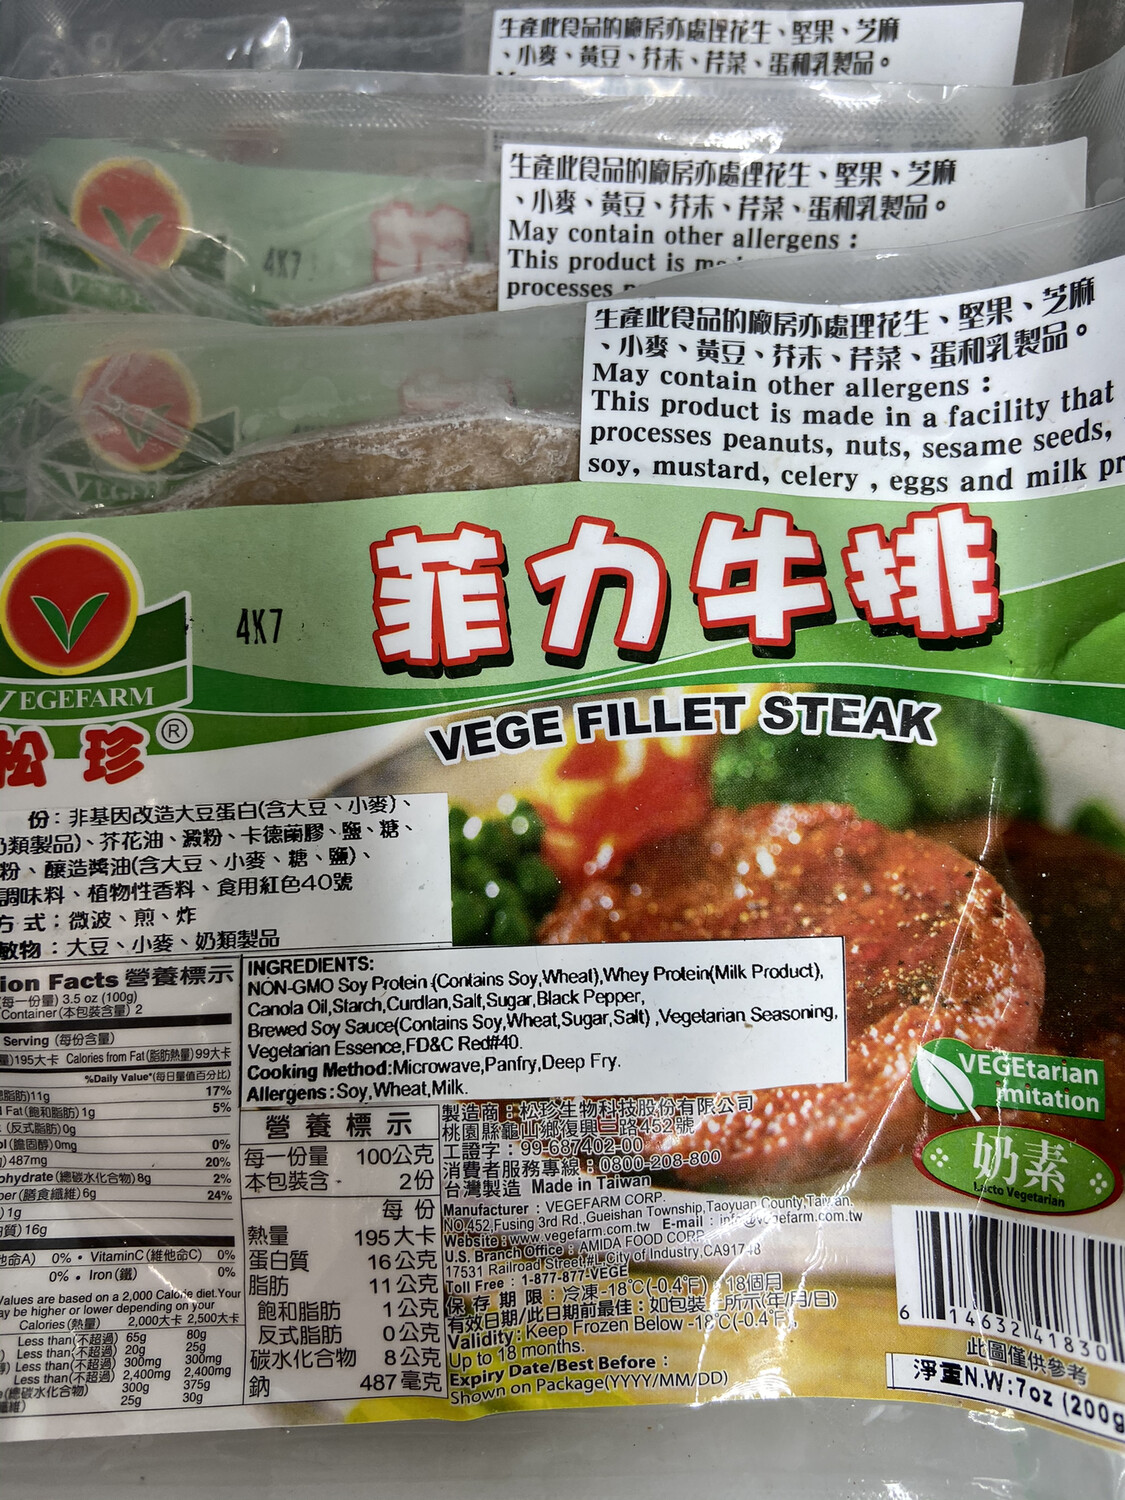 【RF】素食 斋饭 Vege Fillet Steak 菲力牛排 7oz